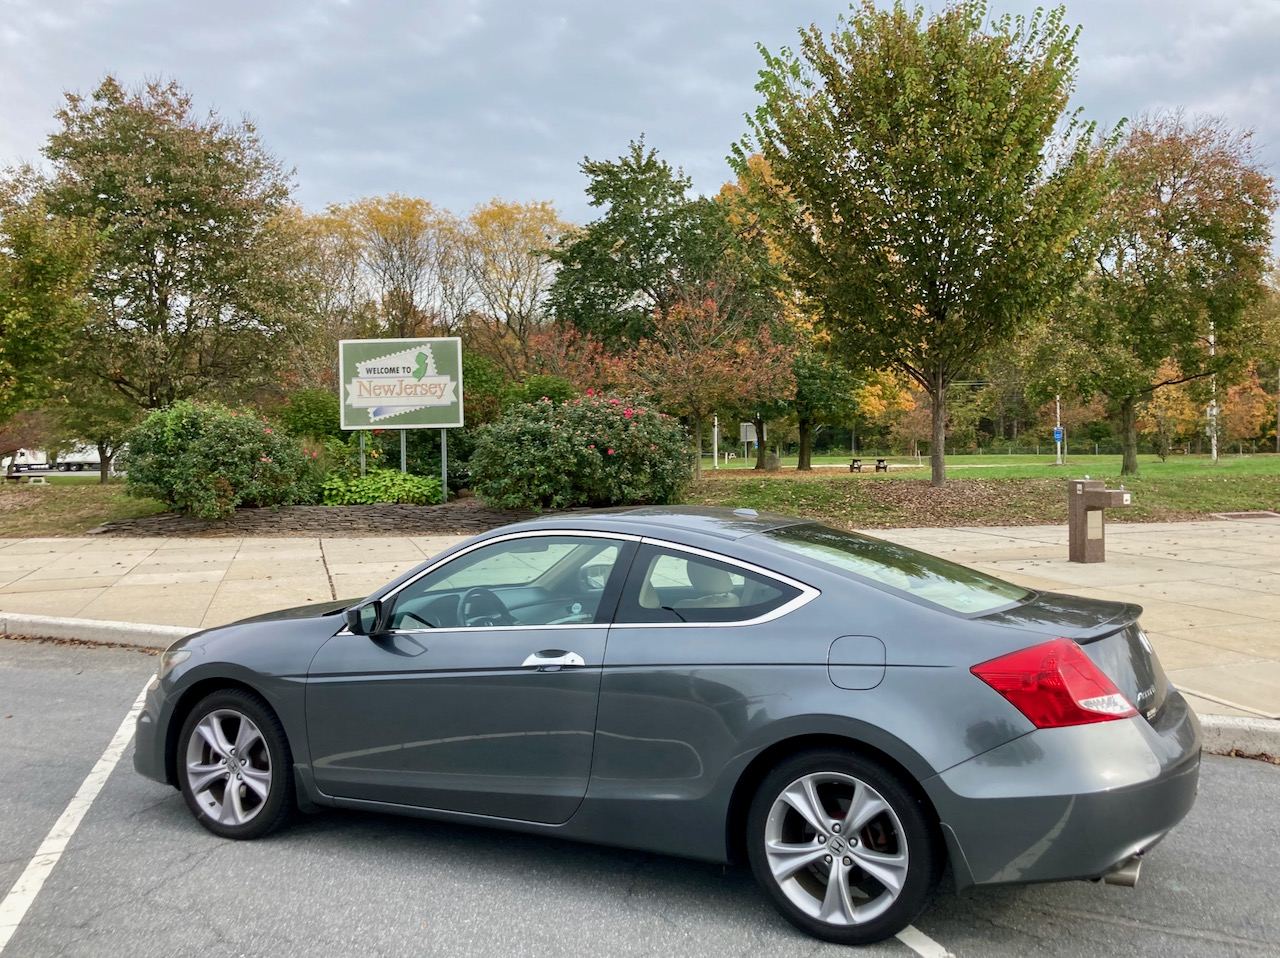 2012 Honda Accord parked beside WELCOME TO NEW JERSEY sign.